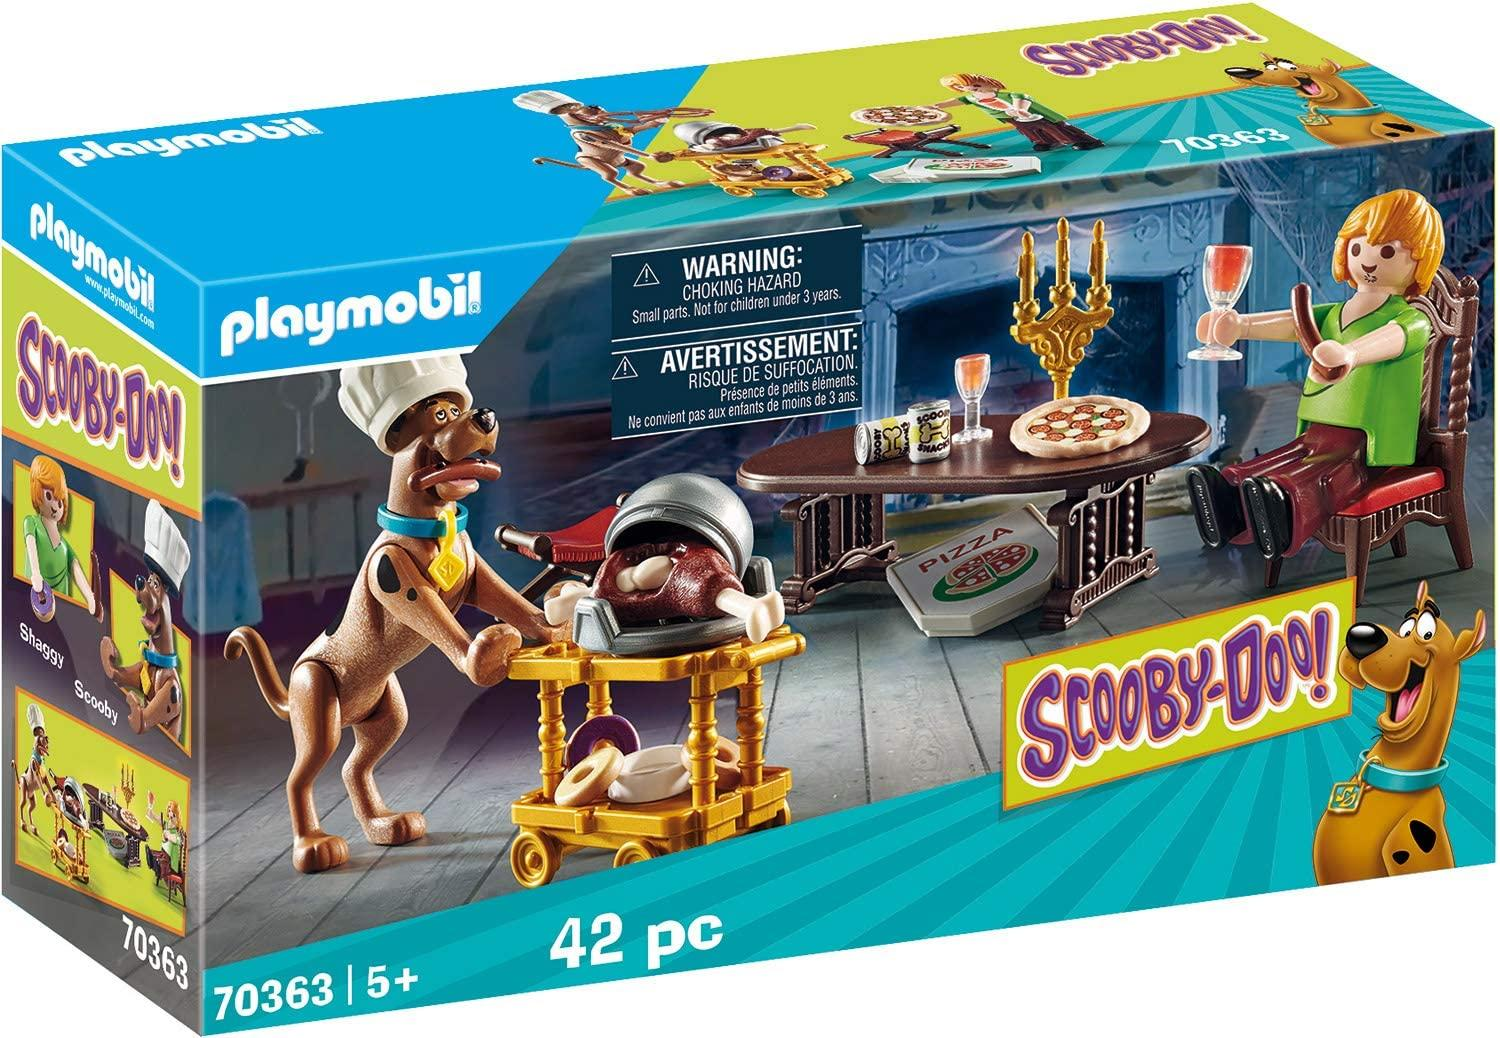 Playmobil 70363 Scooby Doo Dinner With Shaggy Toymaster Ballina